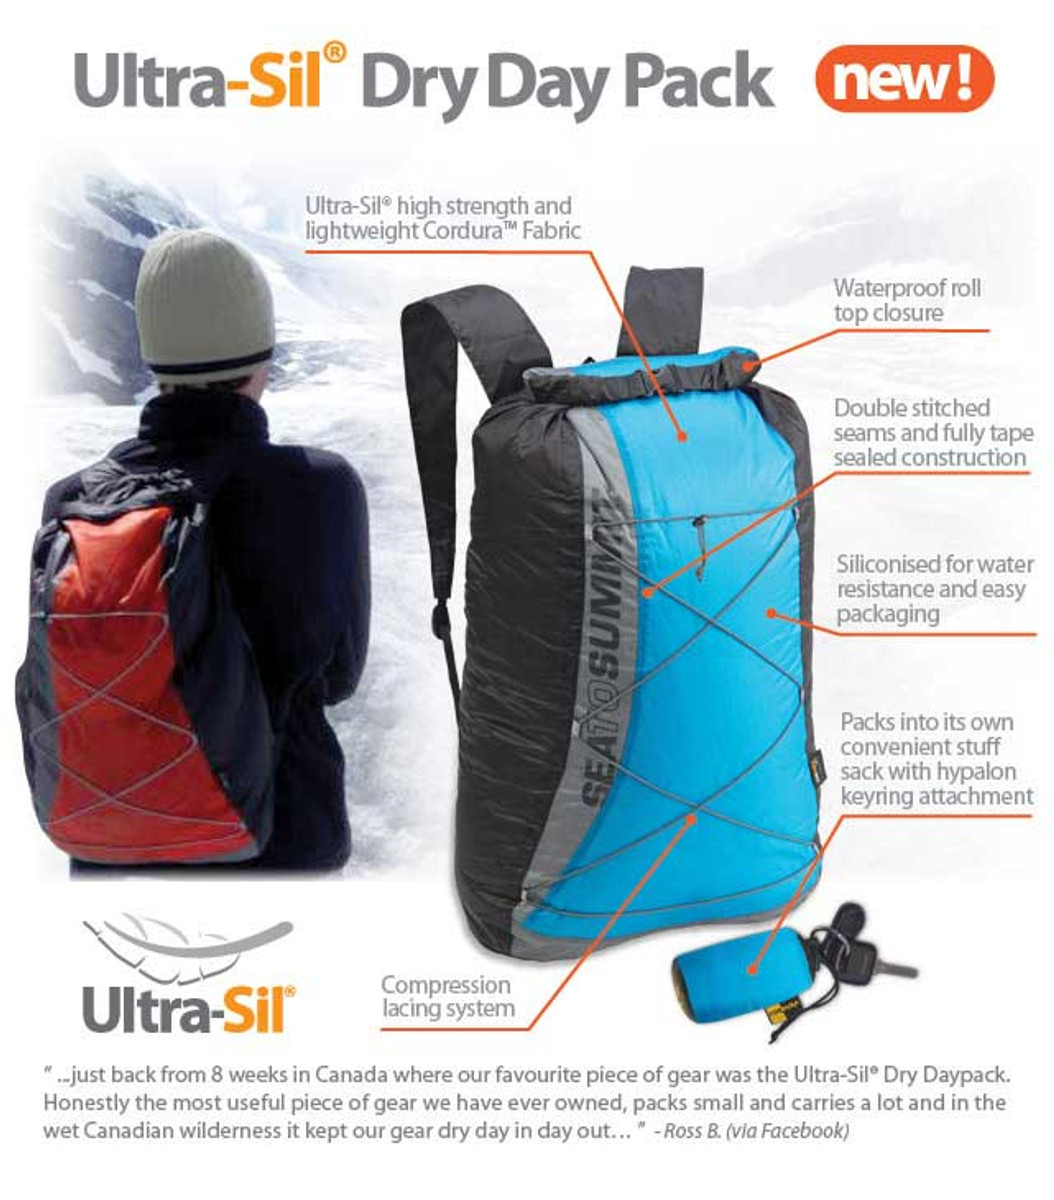 Sea to Summit's 20 litre waterproof day pack folds down to a compact pocket size making it an ideal extra travel day pack